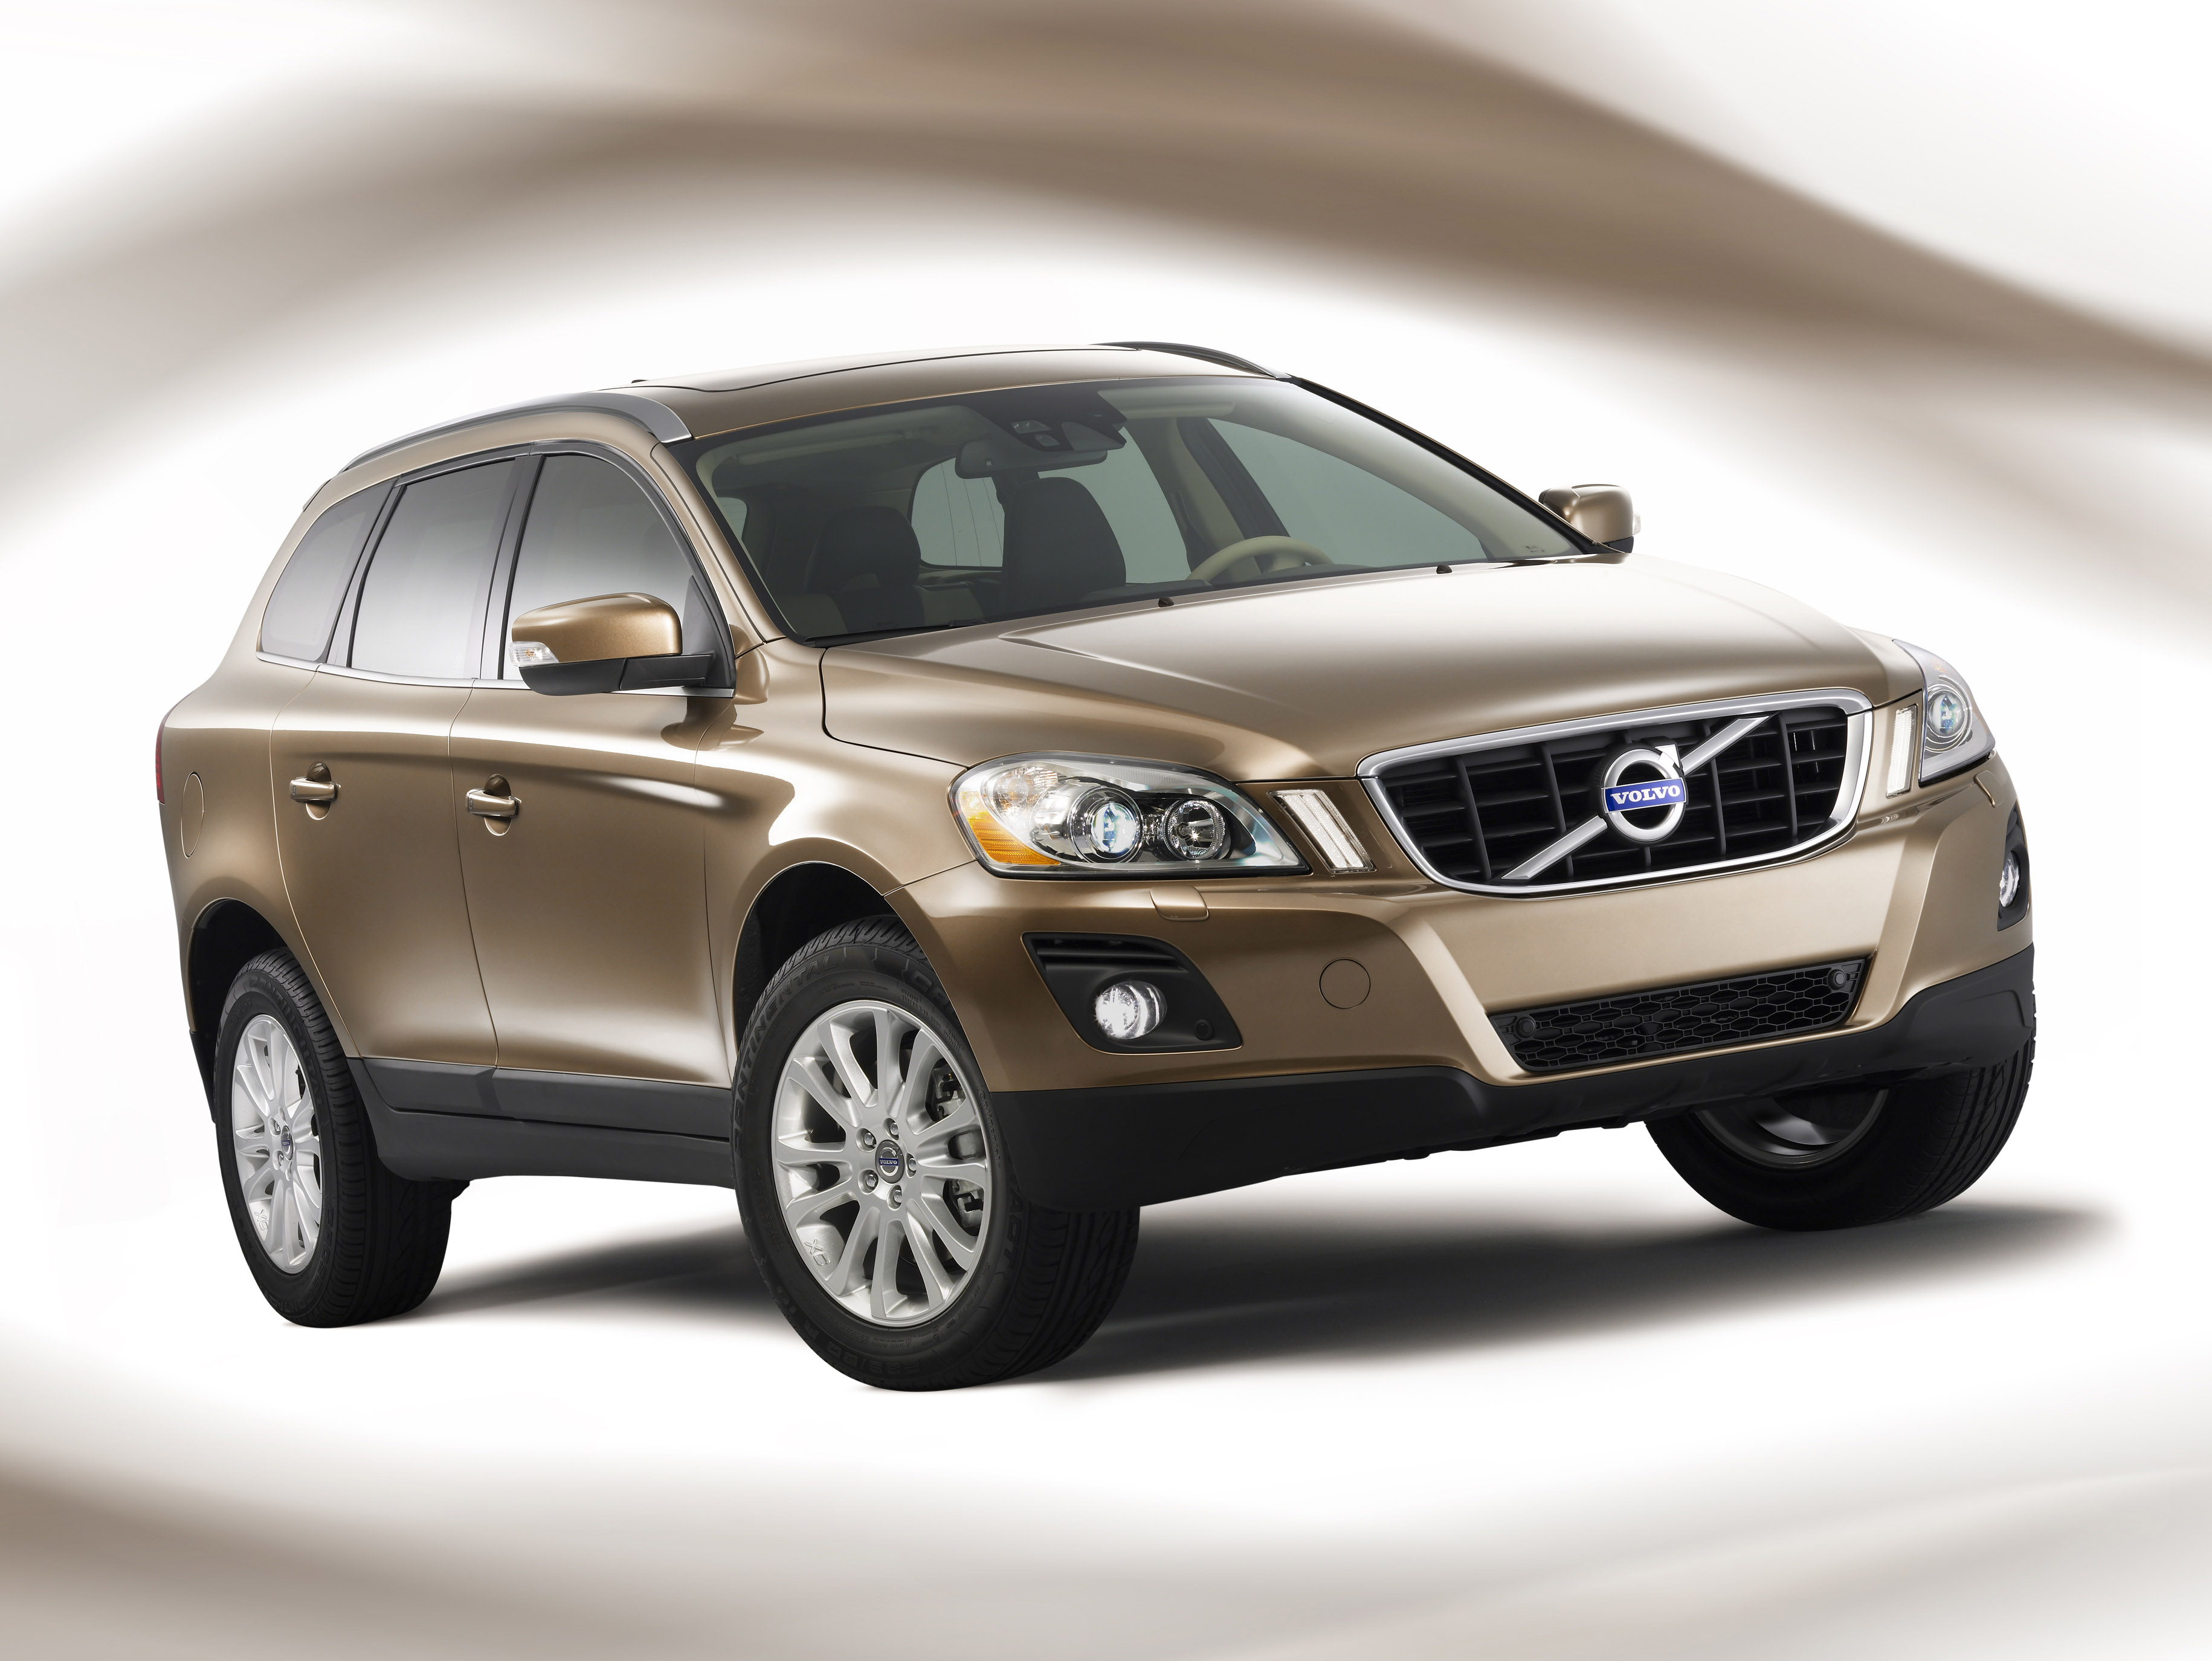 tn volvo new tennessee price nashville stock awd htm suv lease for sale inscription